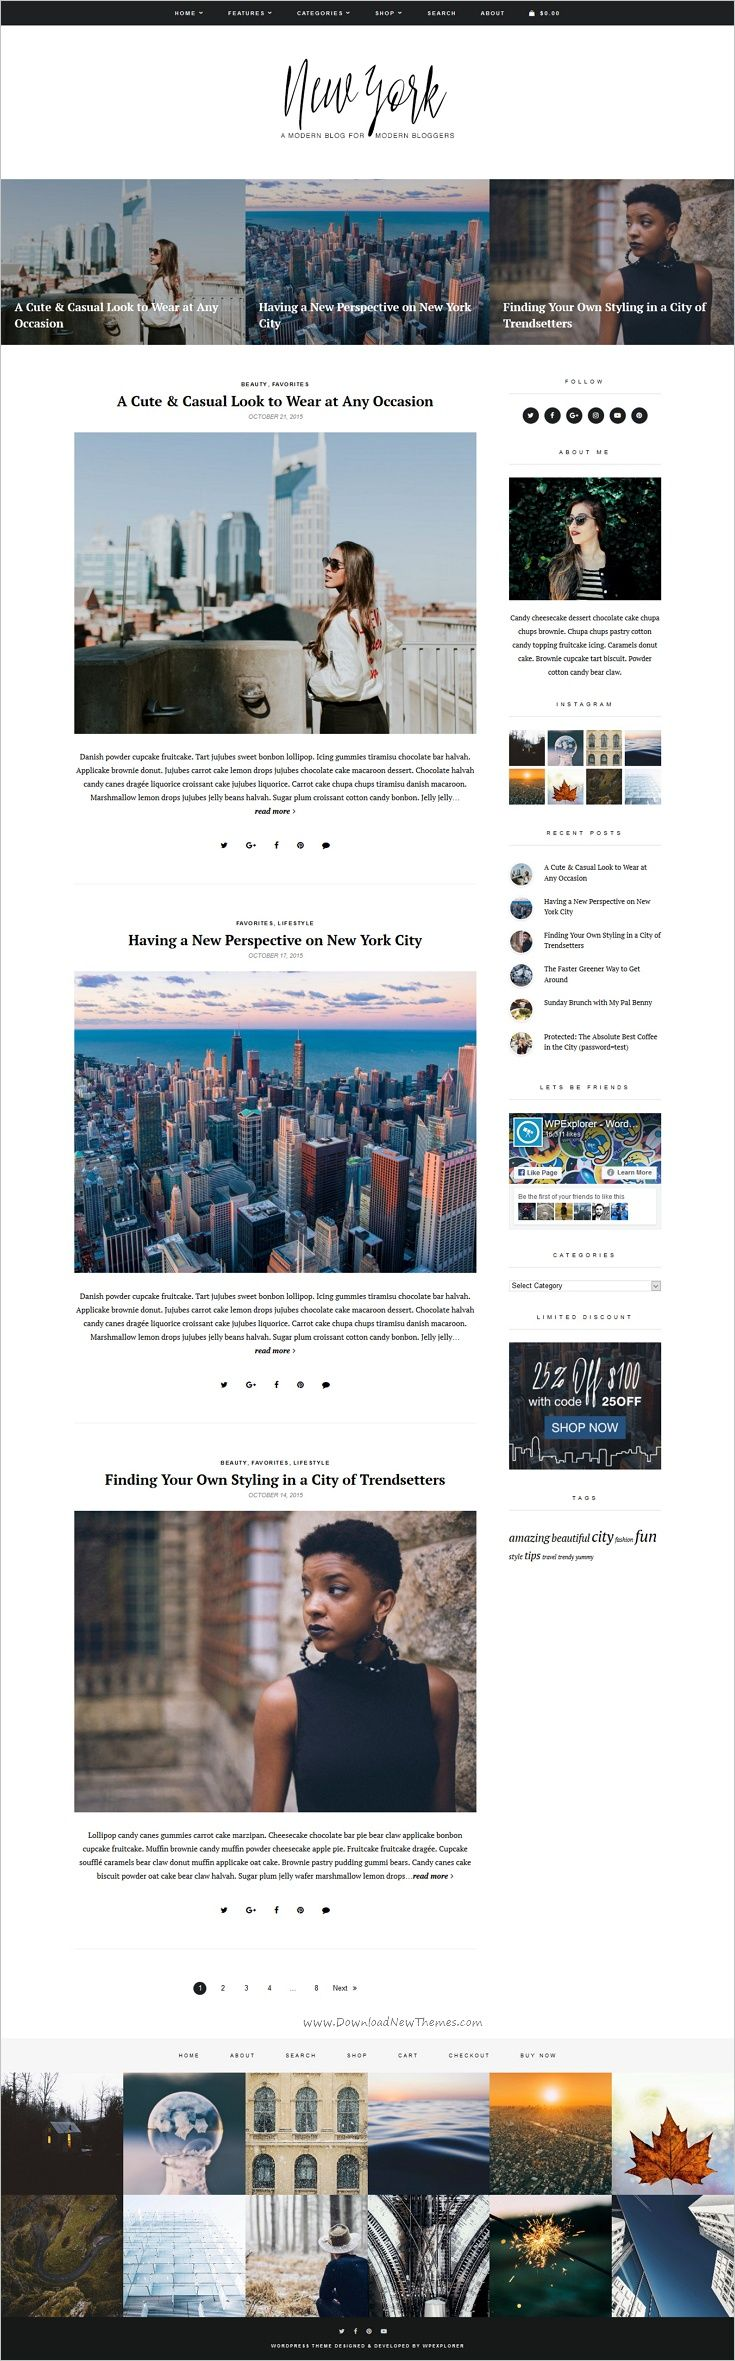 New York is a clean , minimal and fast loading responsive #WordPress theme for #bloggers website with multiple layouts download now➩ https://themeforest.net/item/new-york-wordpress-blog-shop-theme/19185945?ref=Datasata